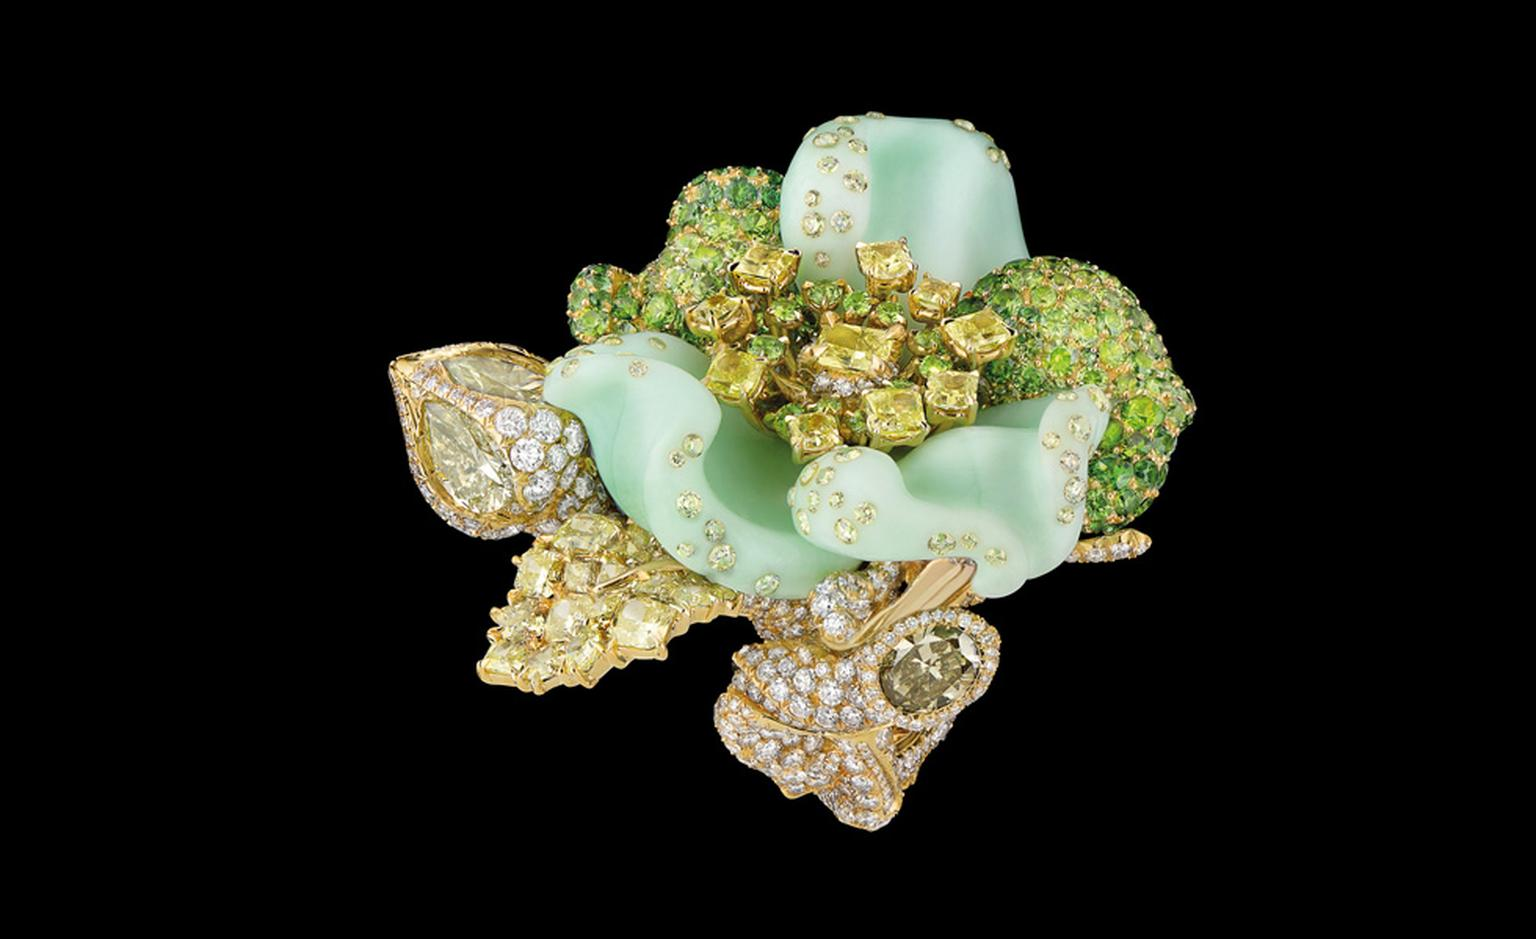 DIOR FINE JEWELLERY LE BAL DES ROSES BAL CHAMPETRE RING YELLOW GOLD, DIAMONDS, COULOURED DIAMONDS, CHRYSOPRASE, DEMANTOID GARNETS AND TSAVORITE GARNETS.